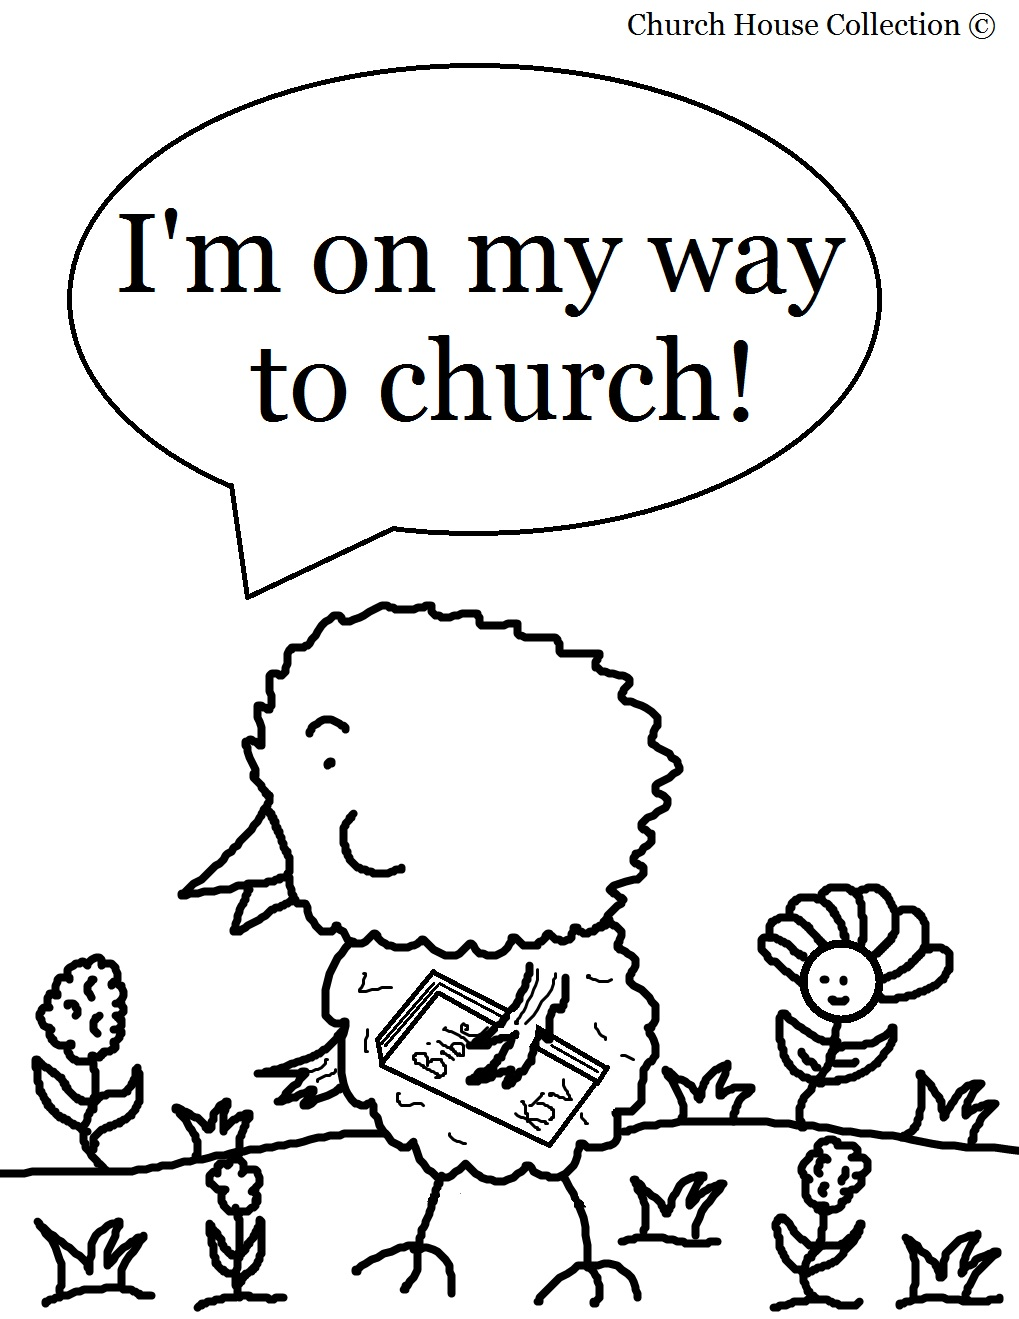 childrens church coloring pages - photo#23